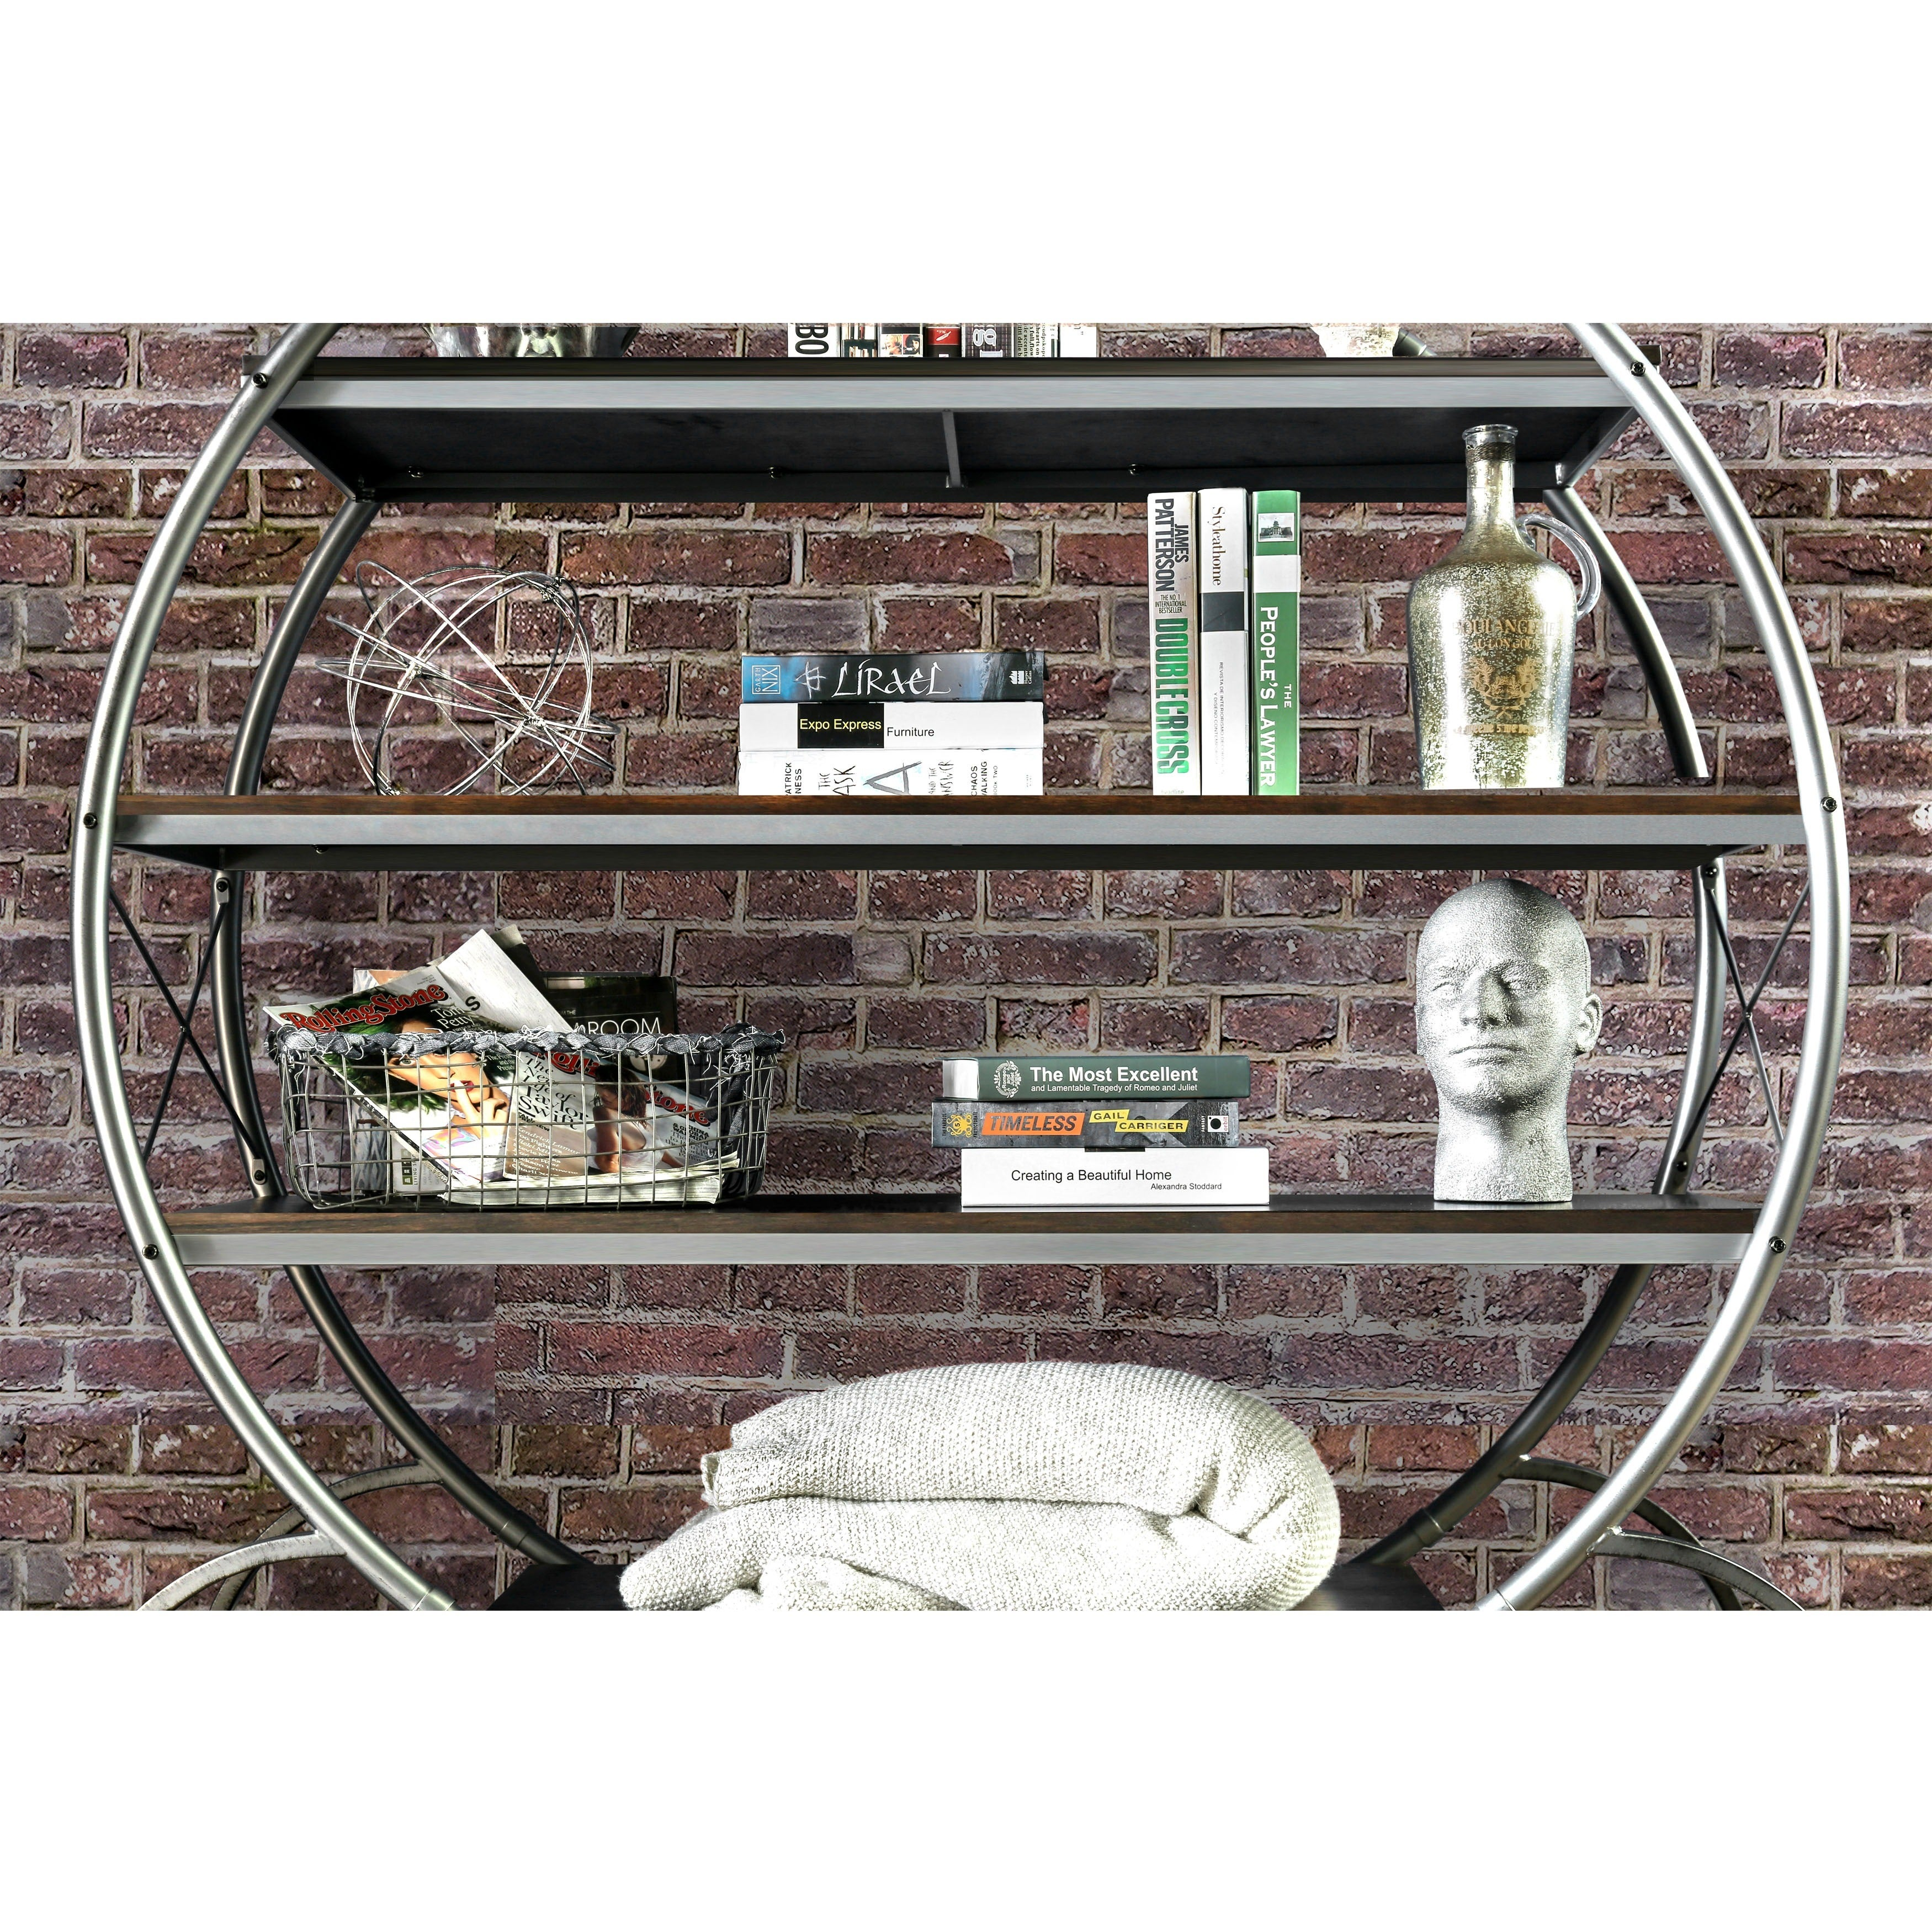 can the circular frames img totally rooms product partitions also design home modern for multiple en ventilate furniture bookshelf demonstrate shelf be